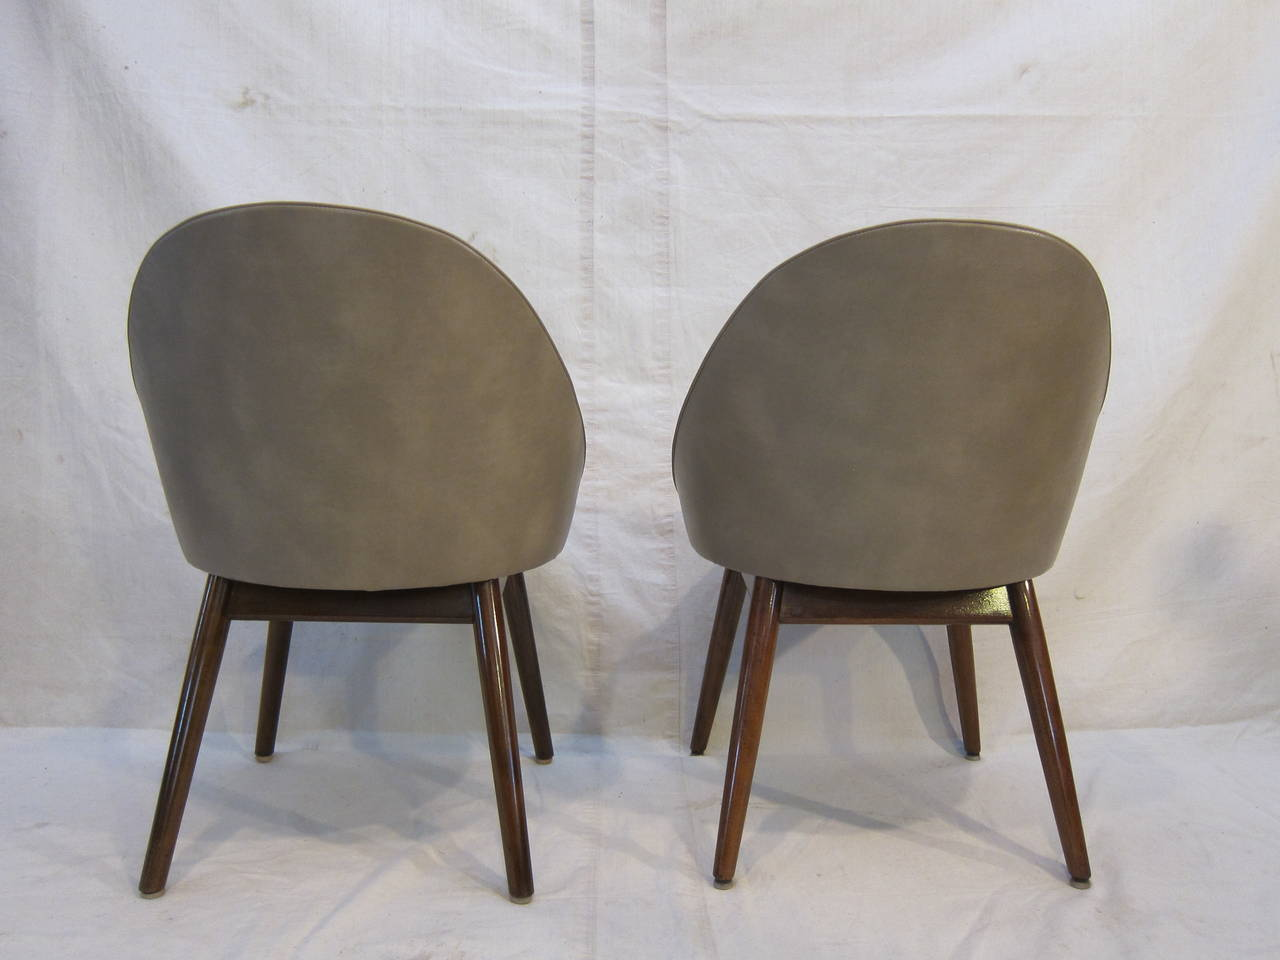 Mid-20th Century Pair of Danish Chairs Attributed to Ejvind Johansson For Sale